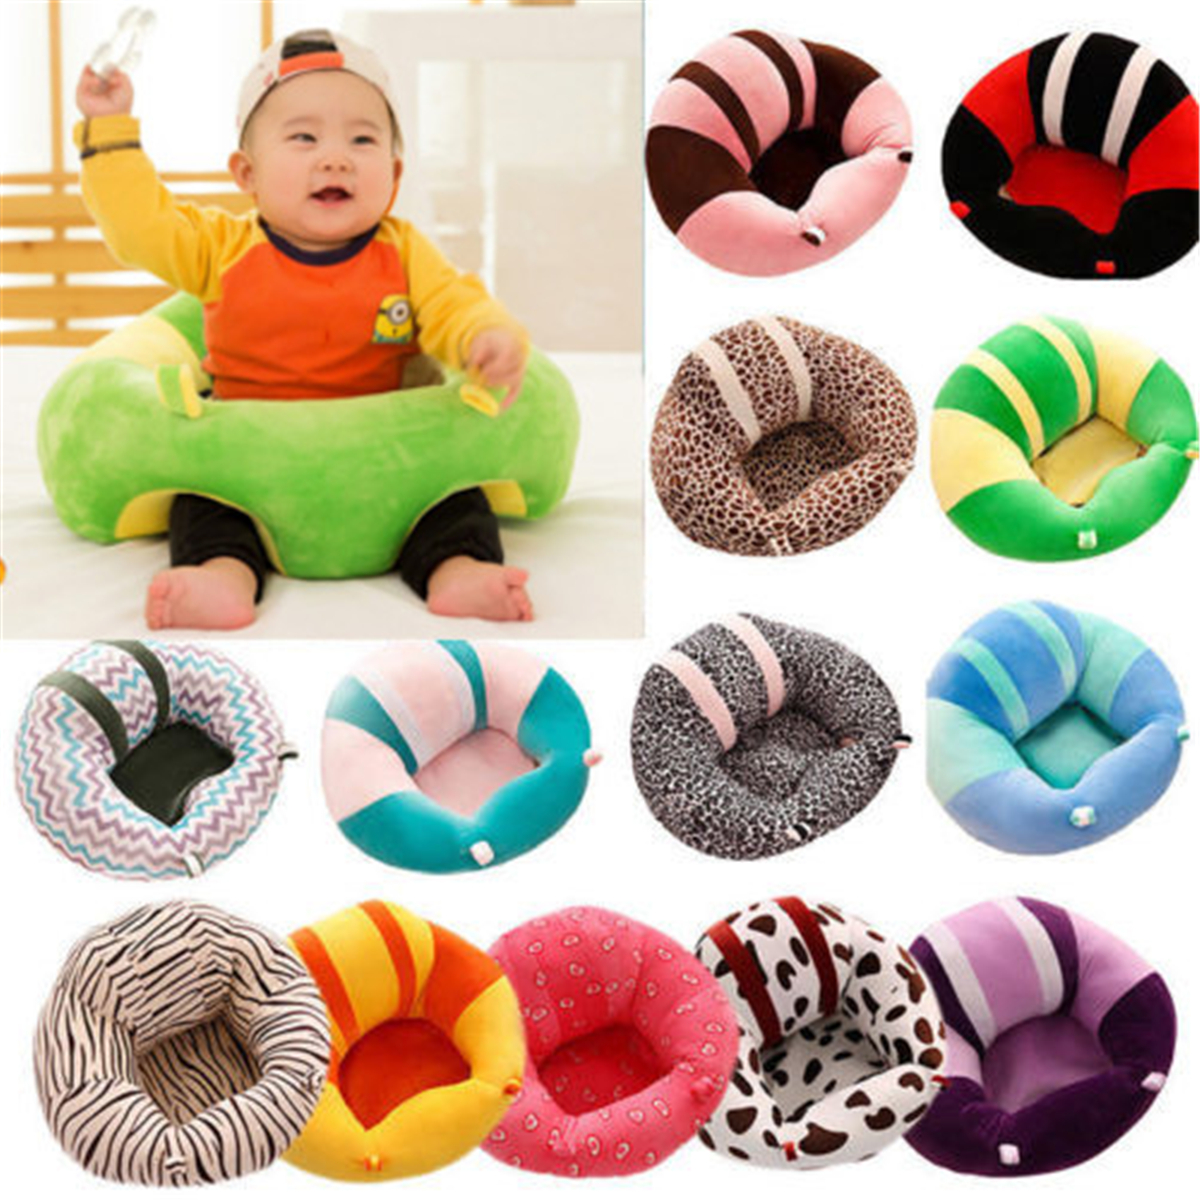 Baby Sofa Seat Learn Sit Feeding Chair Children Kids Sleeping Plush Cushion Toy